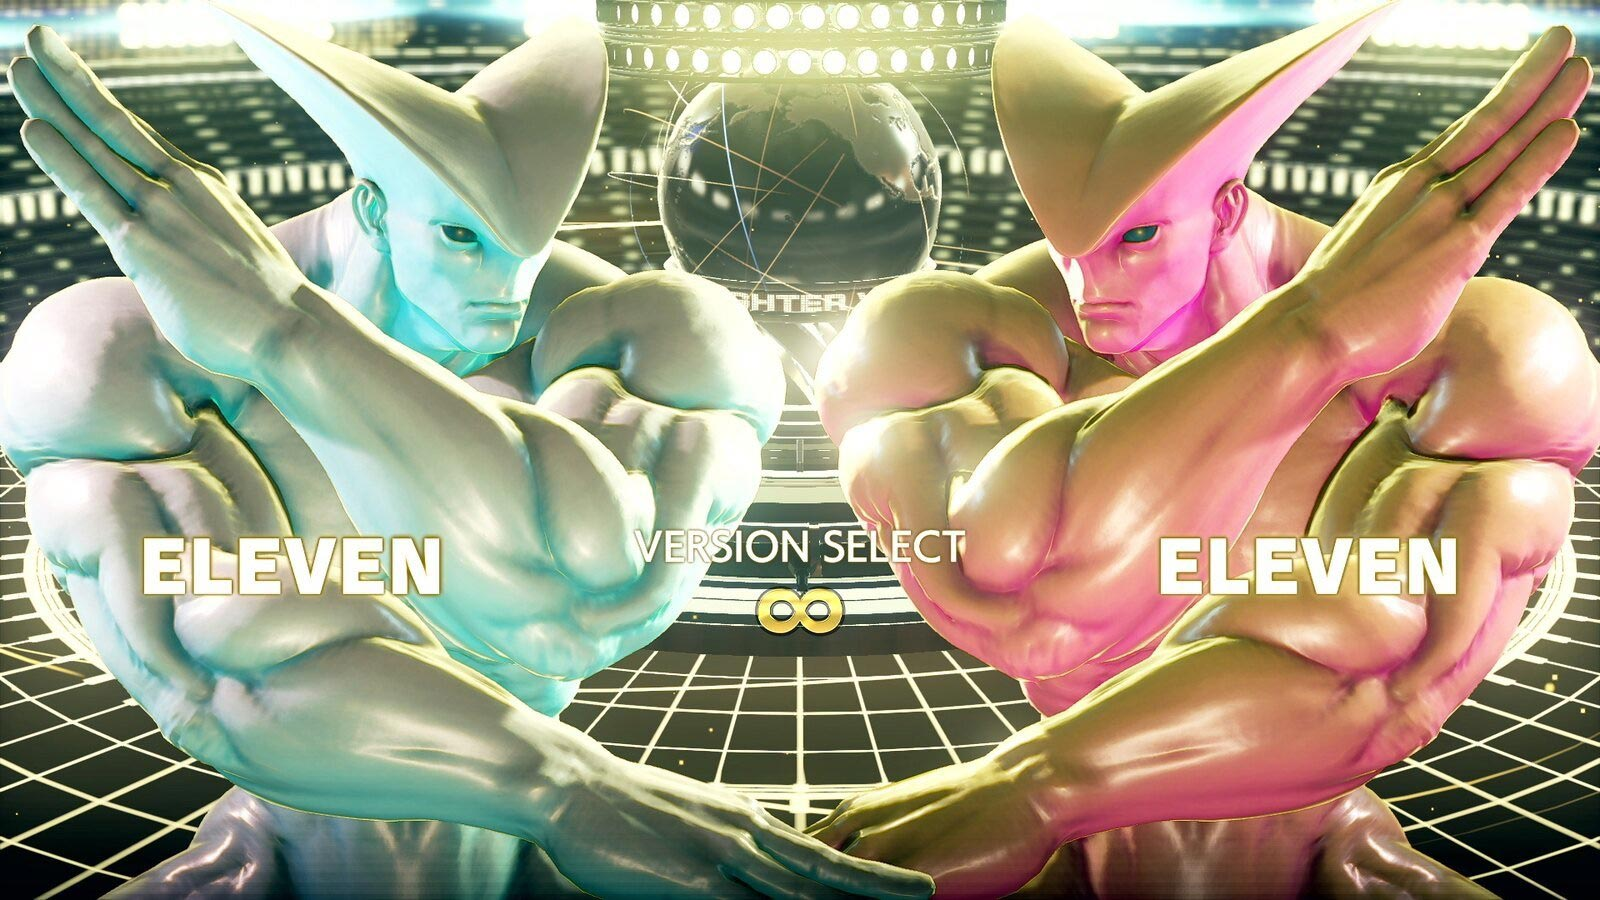 Street Fighter 5 Season 5 Eleven and DLC purchase options 2 out of 5 image gallery